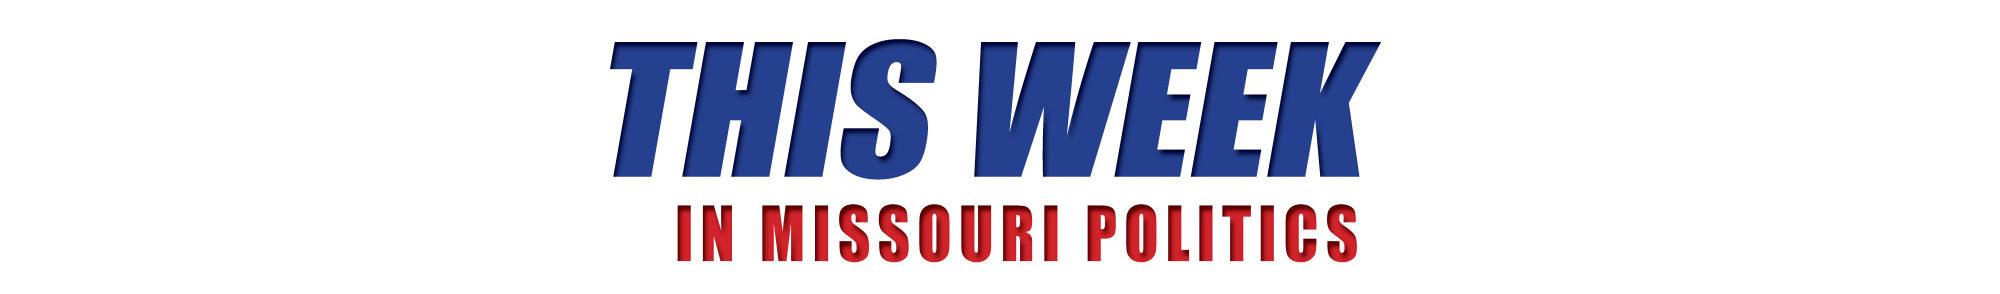 This Week in Missouri Politics